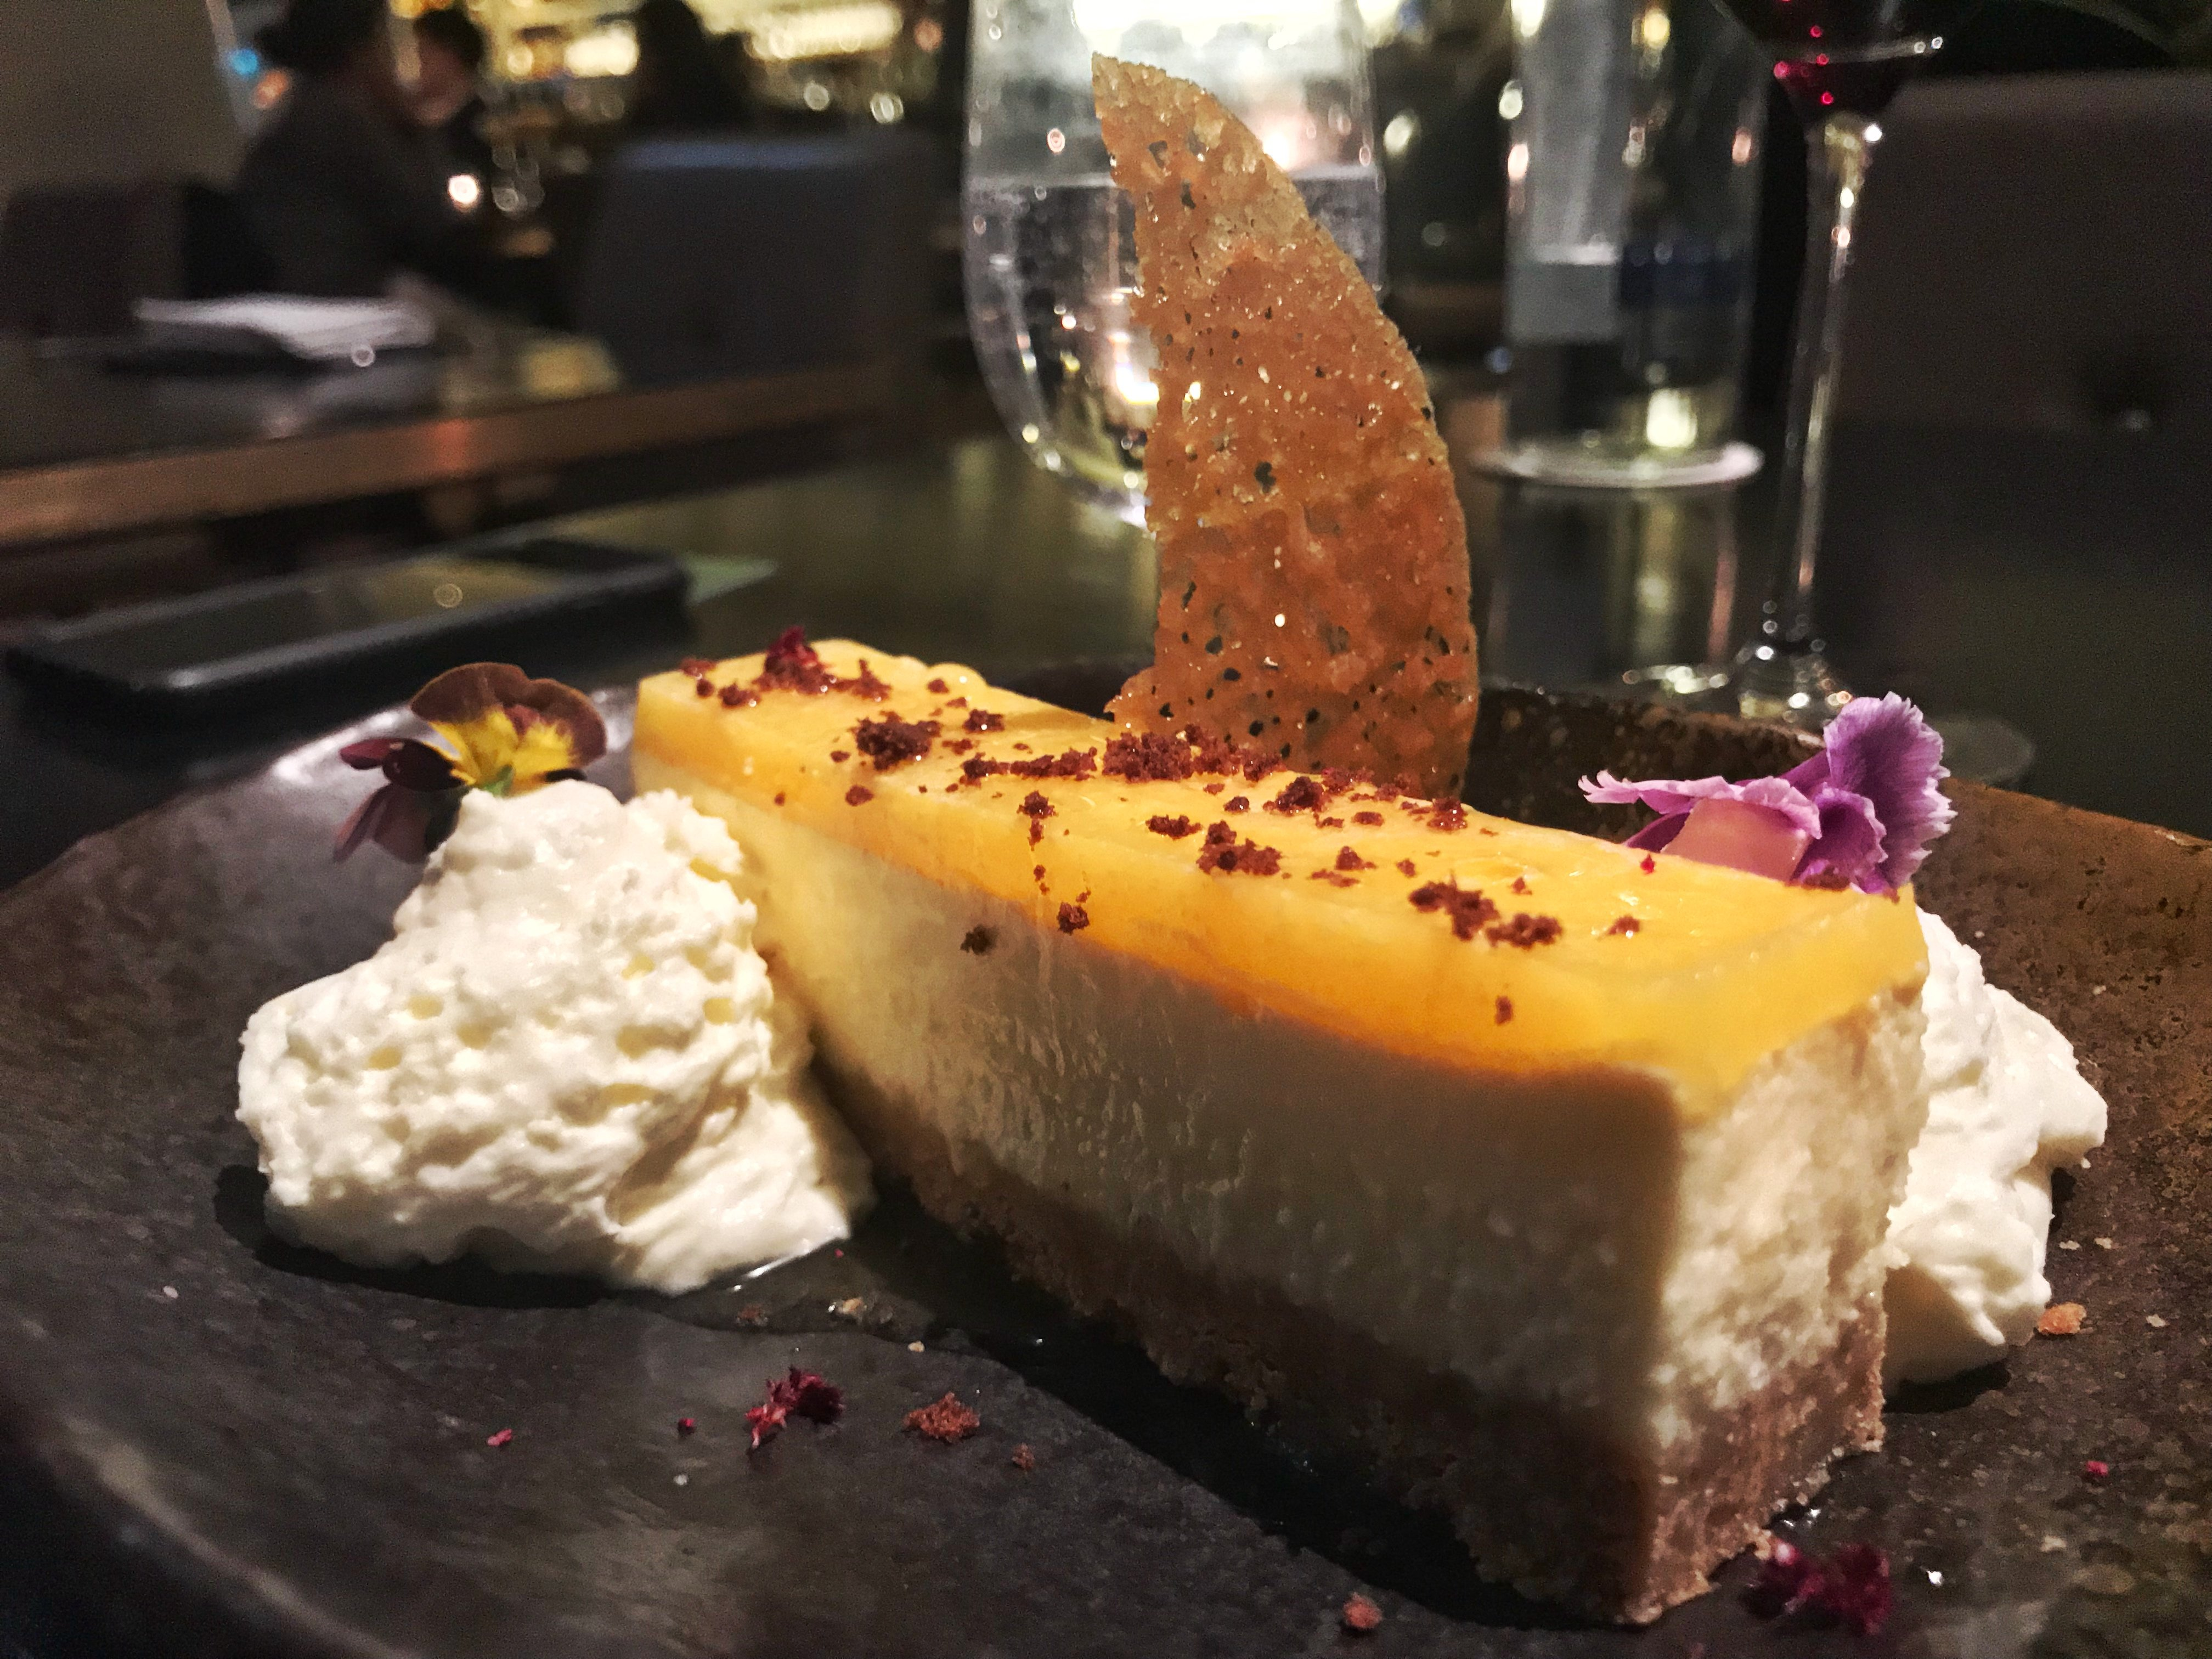 Avenue Restaurant - dessert - Lime and ginger cheesecake with white chocolate and yuzu cream